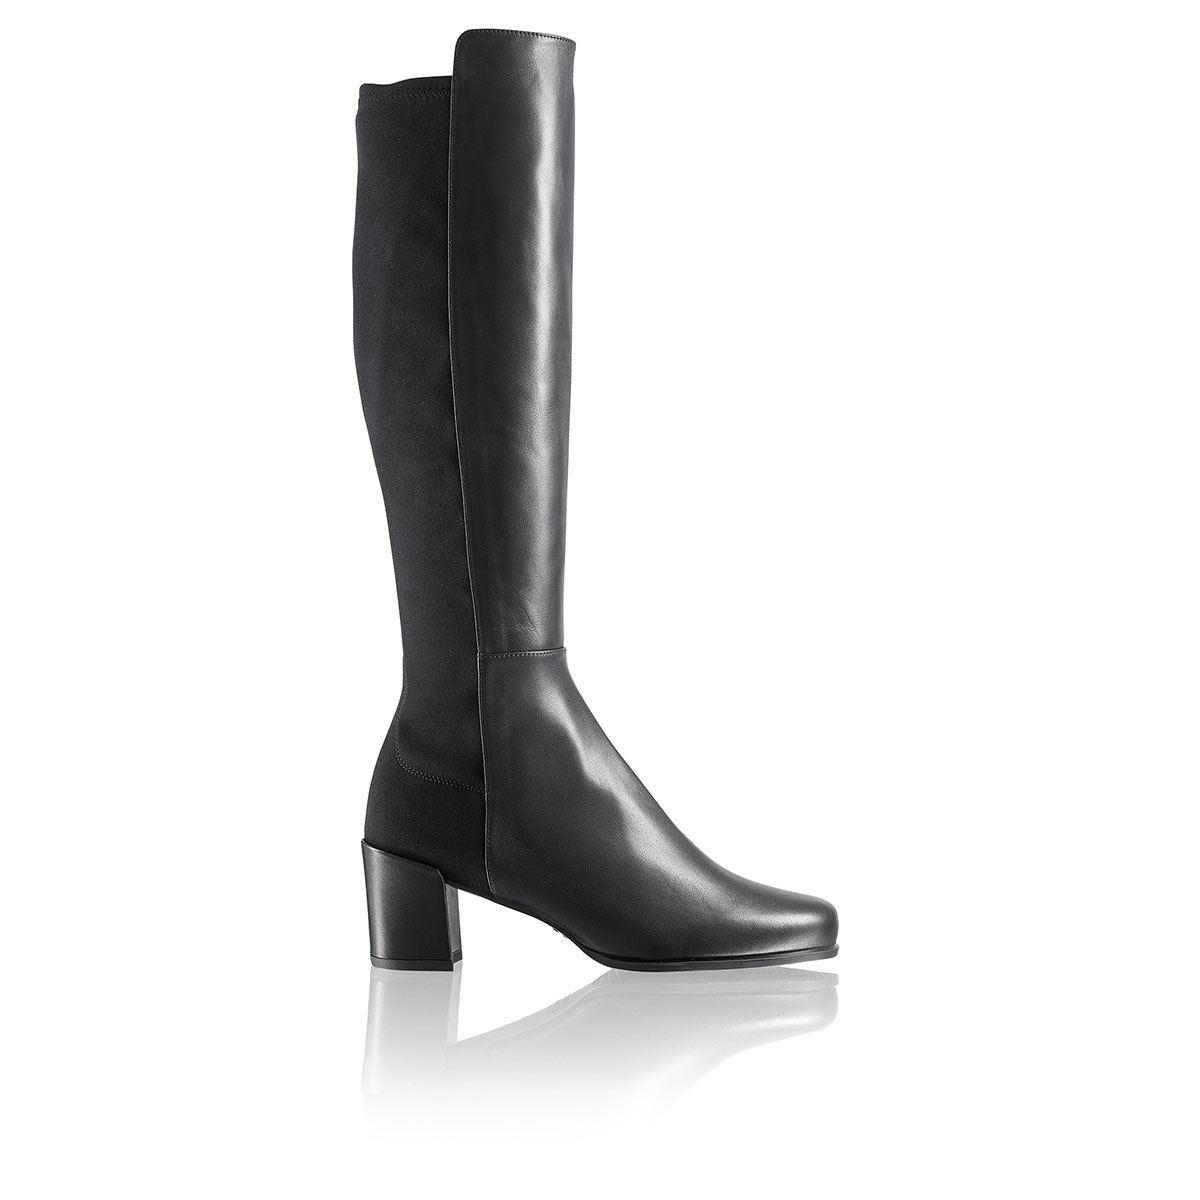 Russell and Bromley MIDHALFWAY Mid Heel Stretch Boot